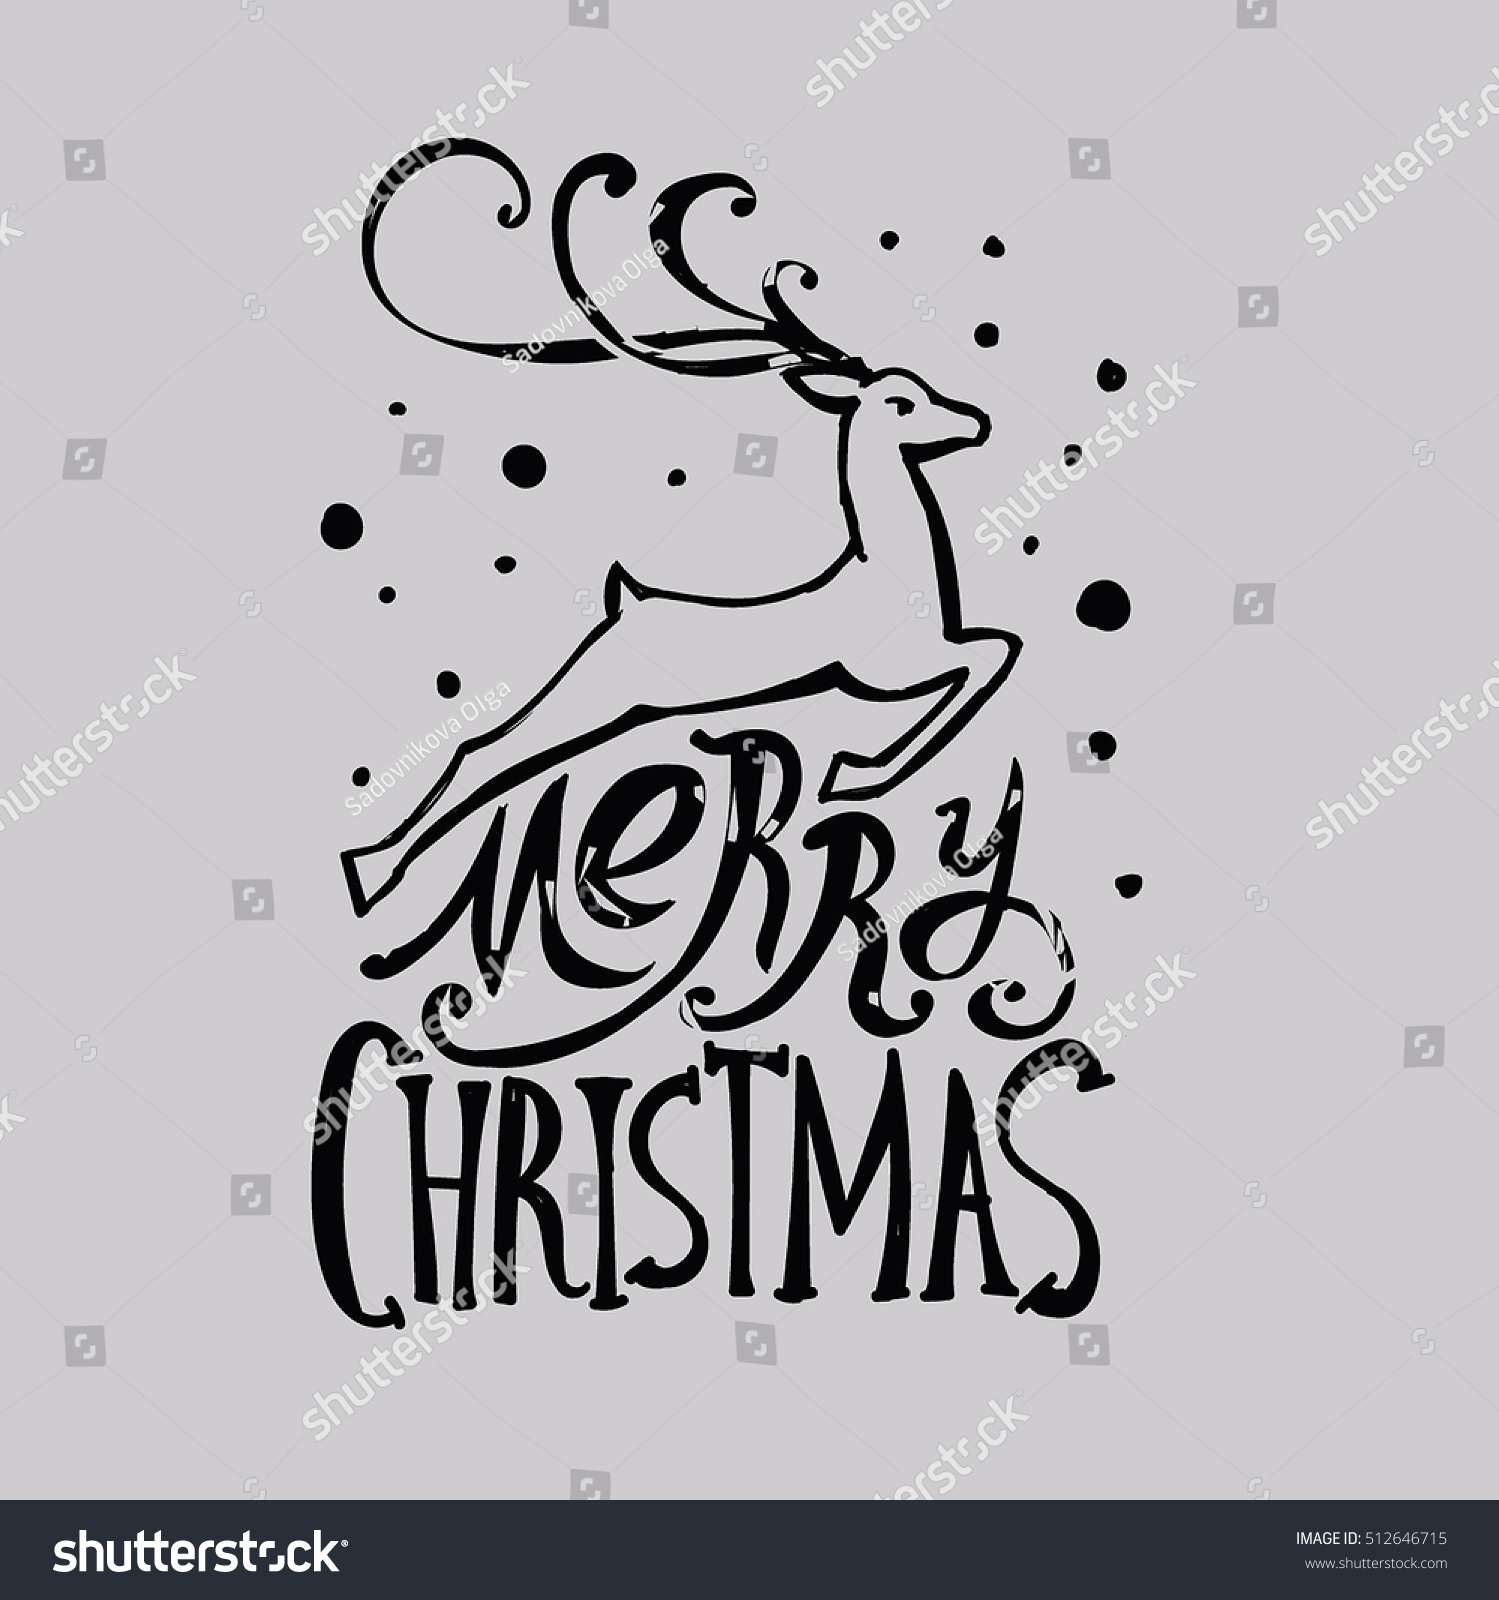 lettering merry christmas christmas illustration composition with reindeer cursive hand drawing